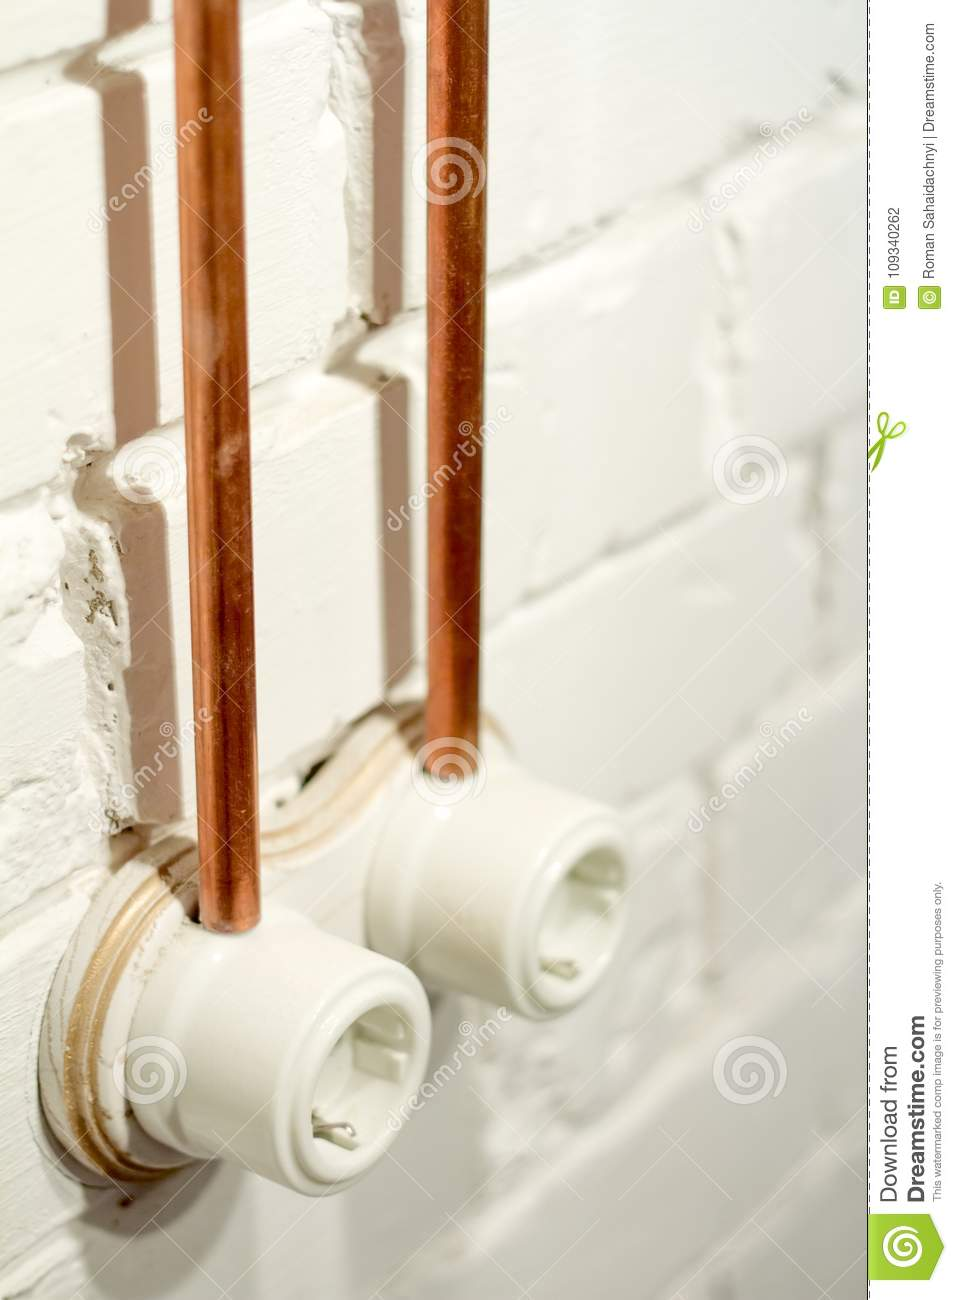 A Vintage Outlet And Electrical Wiring In Copper Tube Stock Photo An Old Retro Socket Made Of White Ceramic With Open Against The Background Brick Wall Pipes